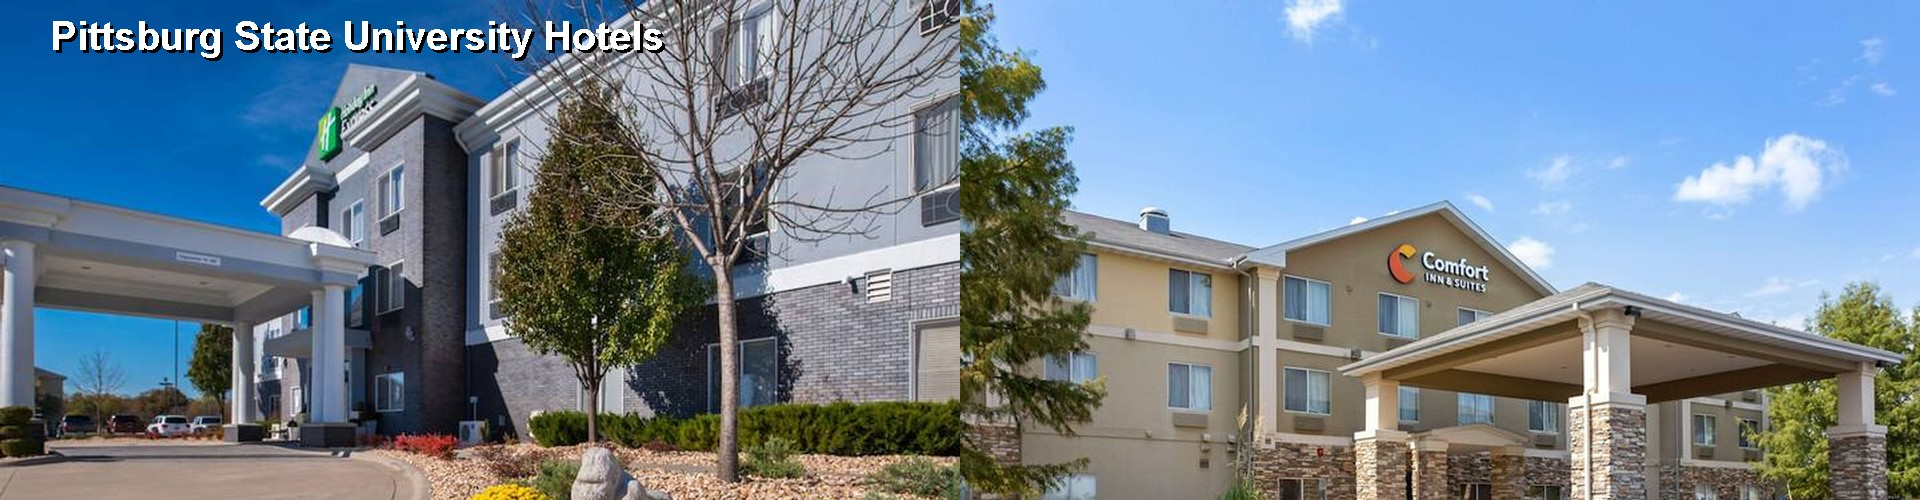 5 Best Hotels near Pittsburg State University